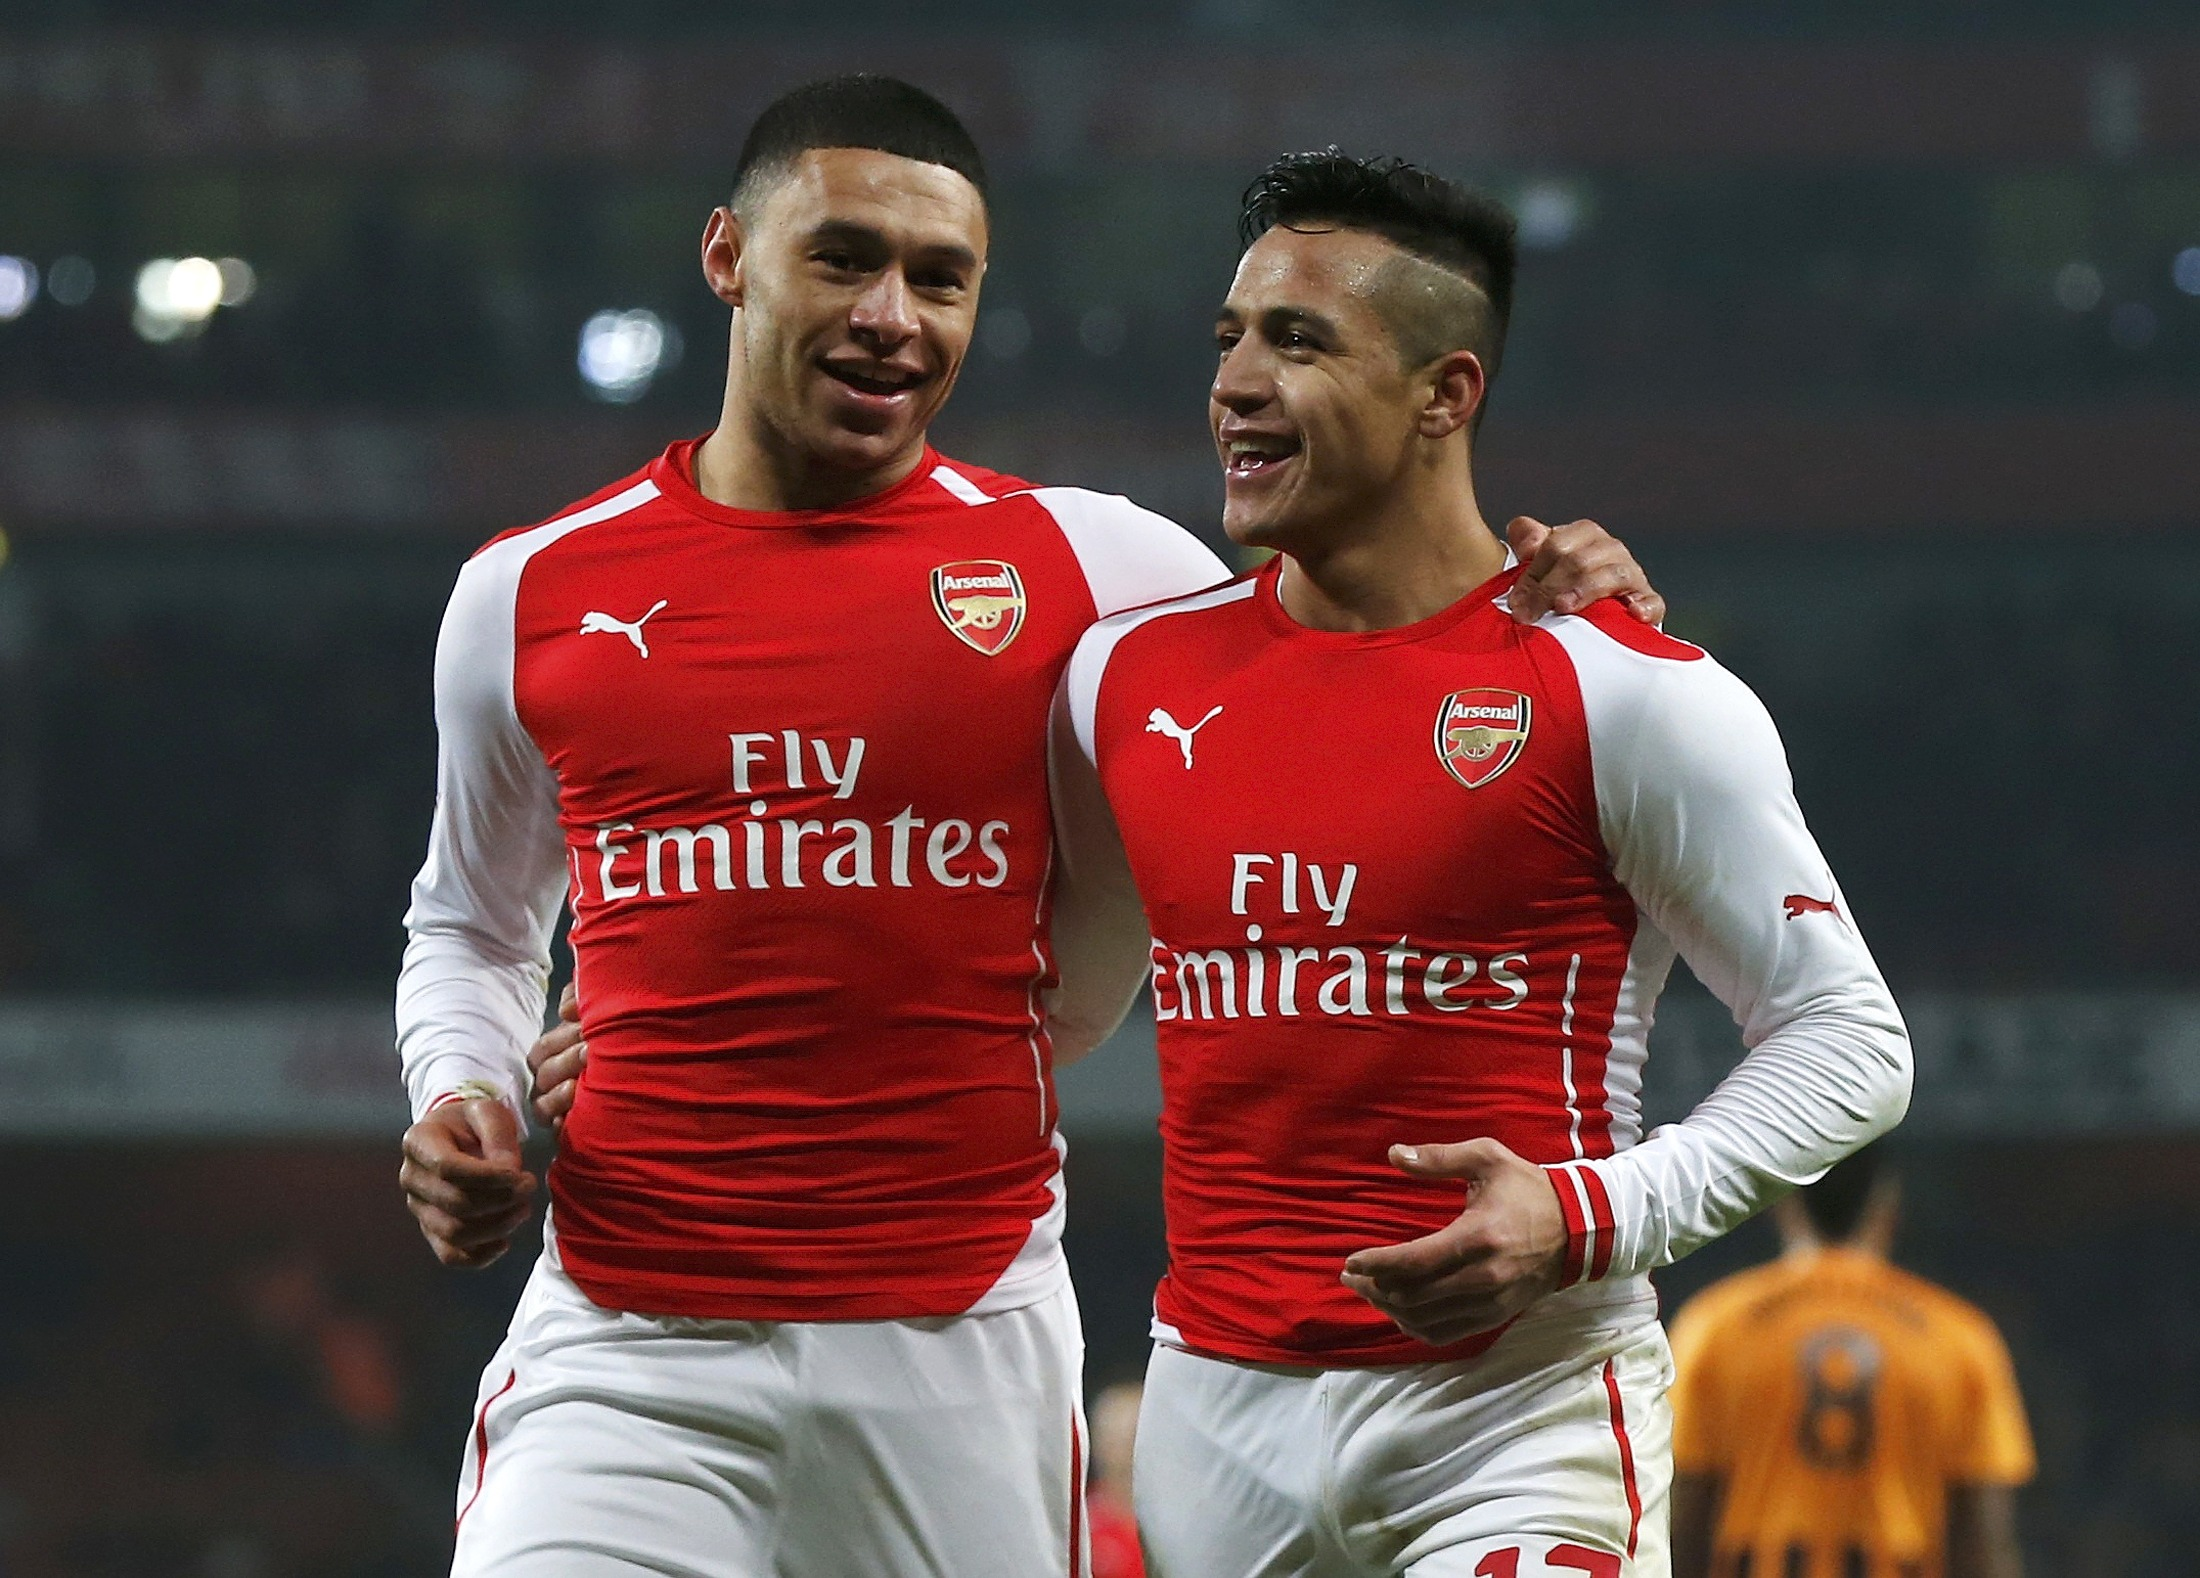 Alexis Sanchez of Arsenal celebrates with team mate Alex Oxlade-Chamberlain after scoring his team's second goal against Hull during their FA Cup third round soccer match at the Emirates Stadium in London